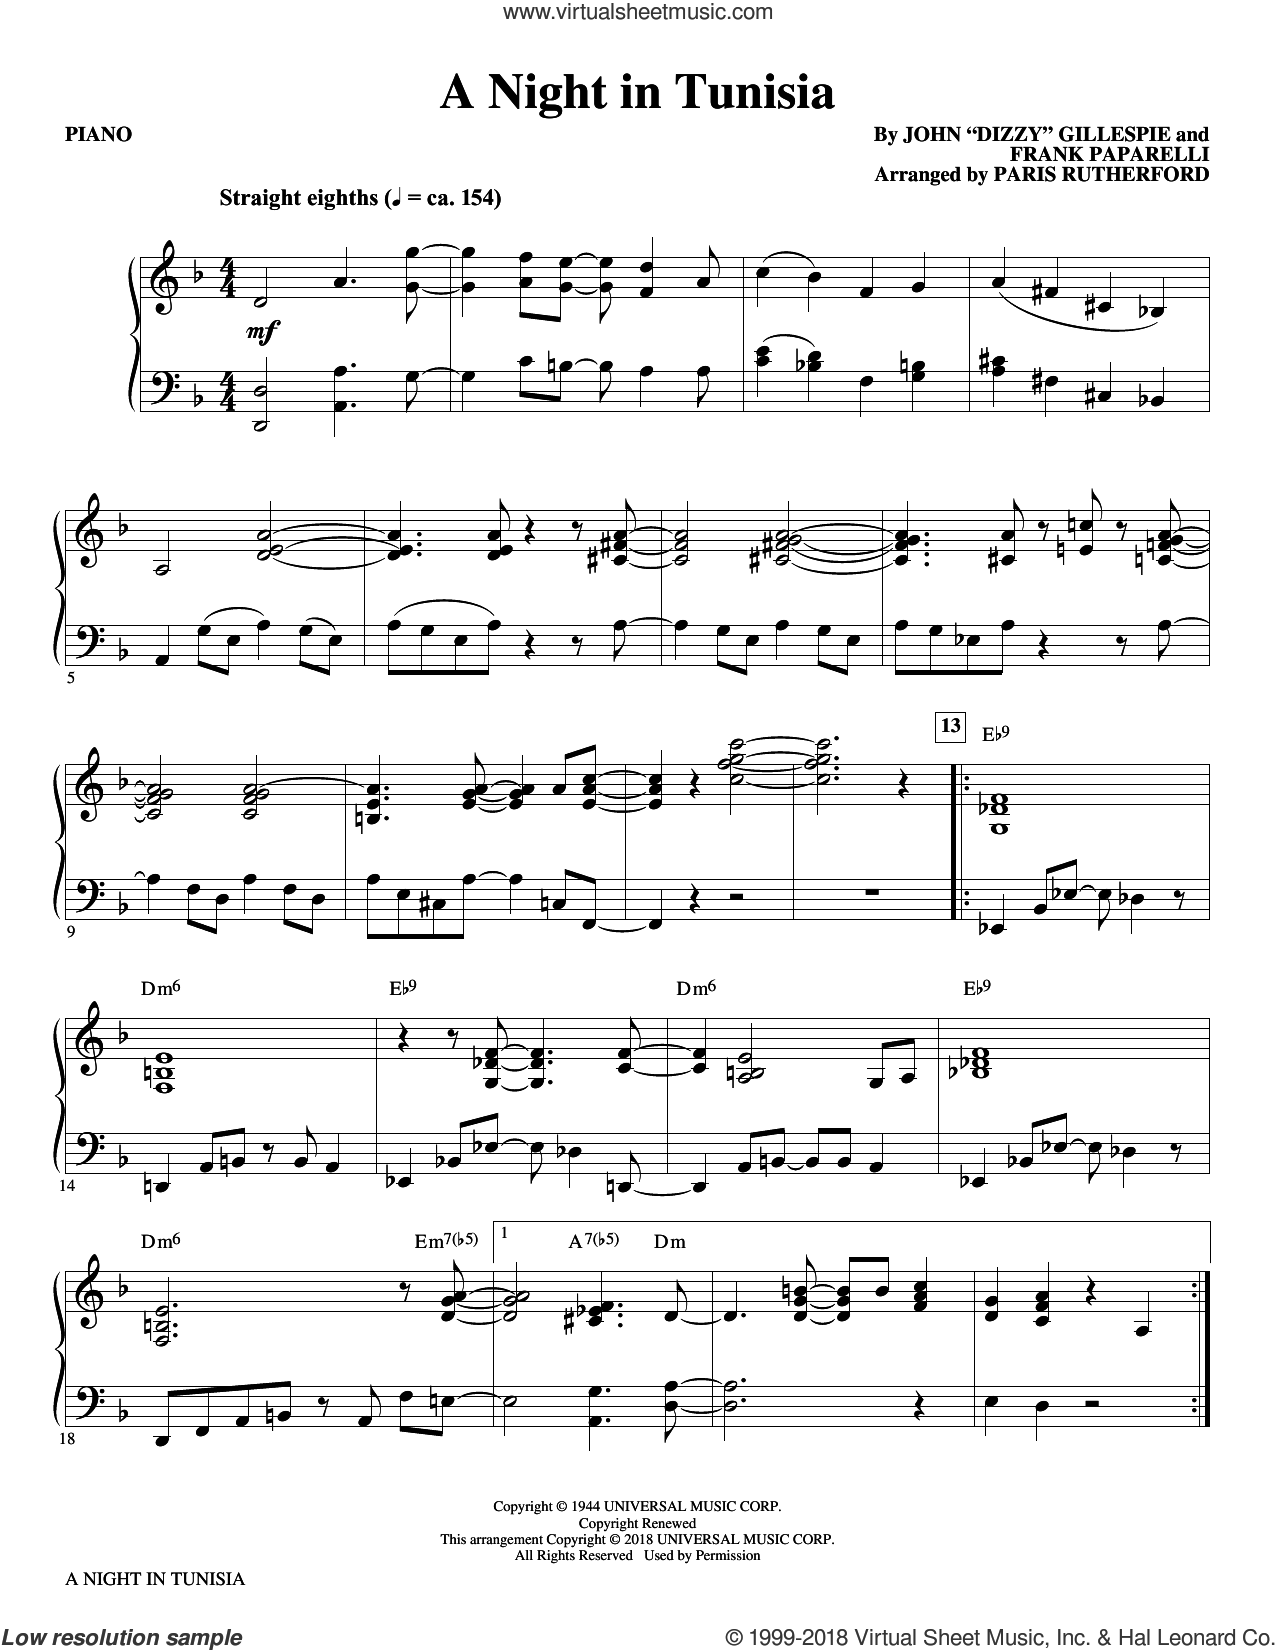 A Night in Tunisia (arr. Paris Rutherford) (complete set of parts) sheet music for orchestra/band by Paris Rutherford, Dizzy Gillespie and Frank Paparelli, intermediate skill level